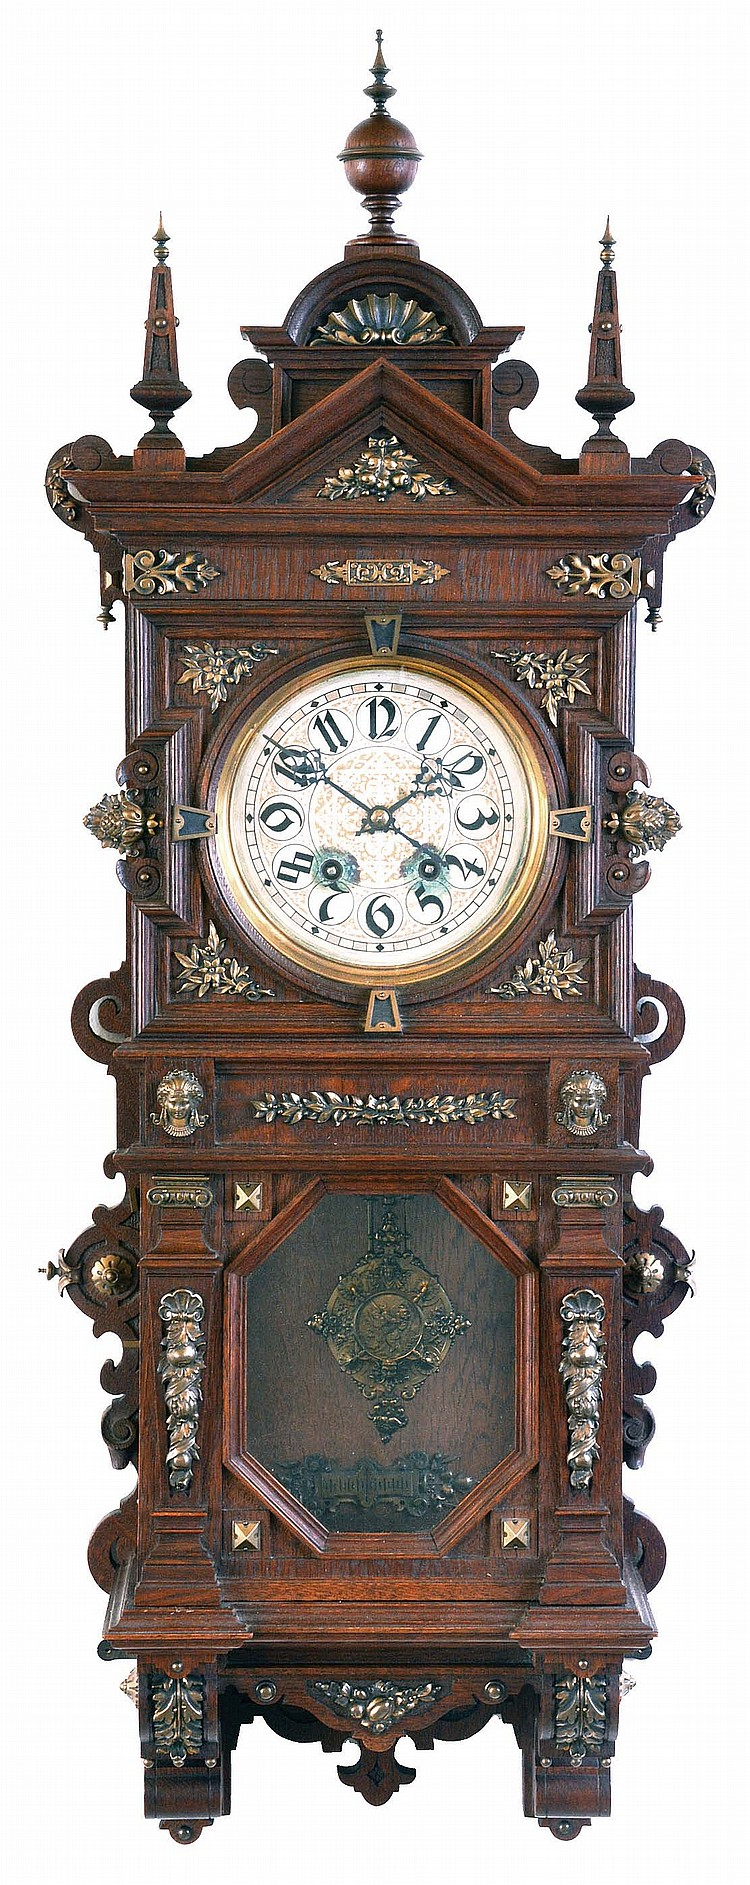 Lenzkirch, Germany, wall clock, the oak case richly ornamented with carving, moldings, and applied, cast brass elements, case top with central sphere and flanking obelisk finials, Arabic numeral silvered dial, blued steel hands, two train, 8 day